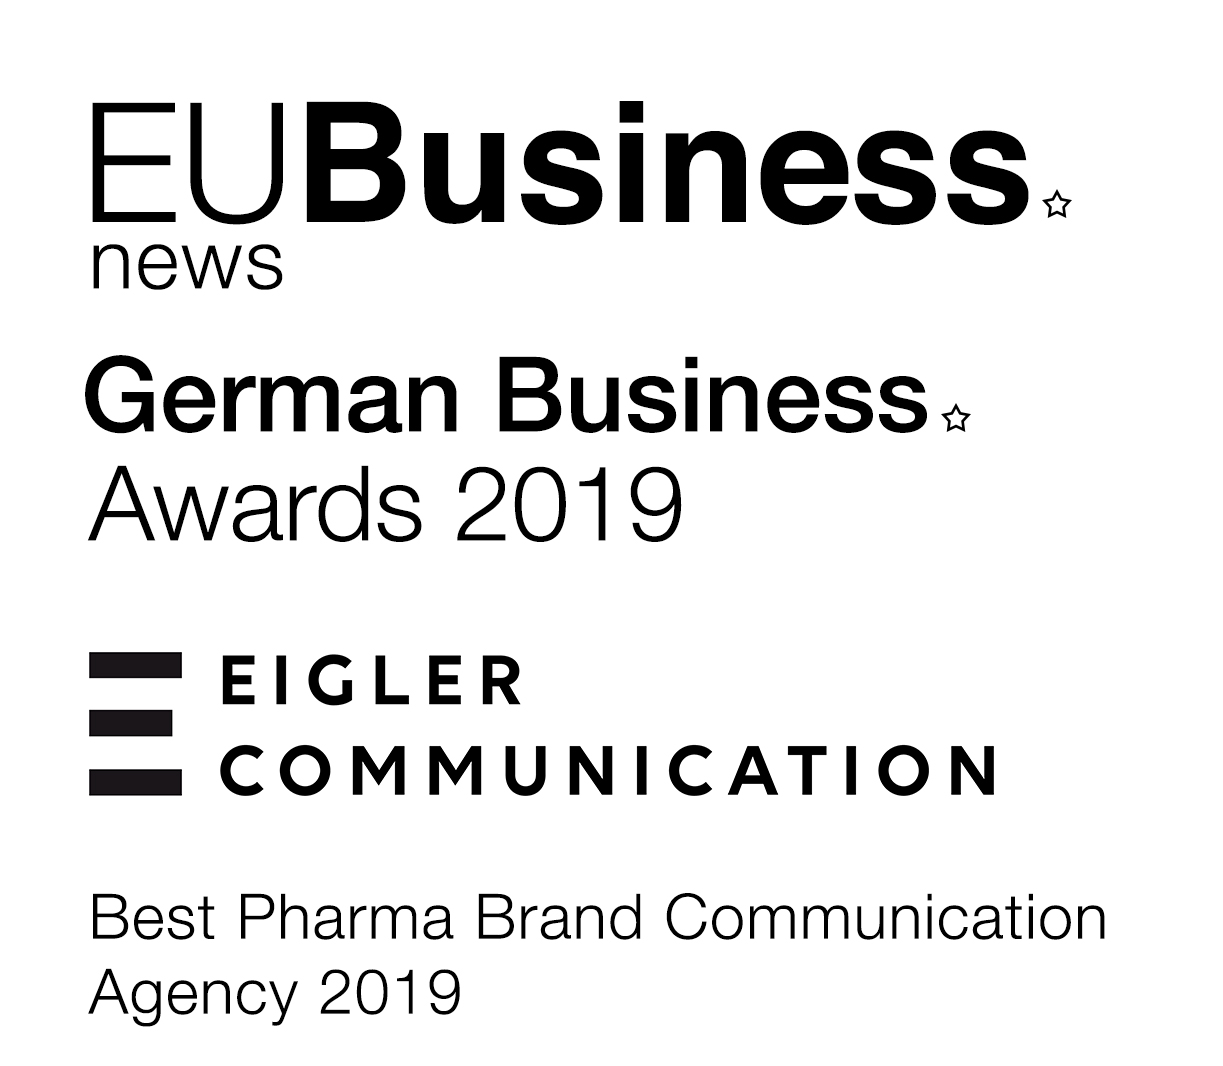 Best Pharma Brand Communication Agency 2019